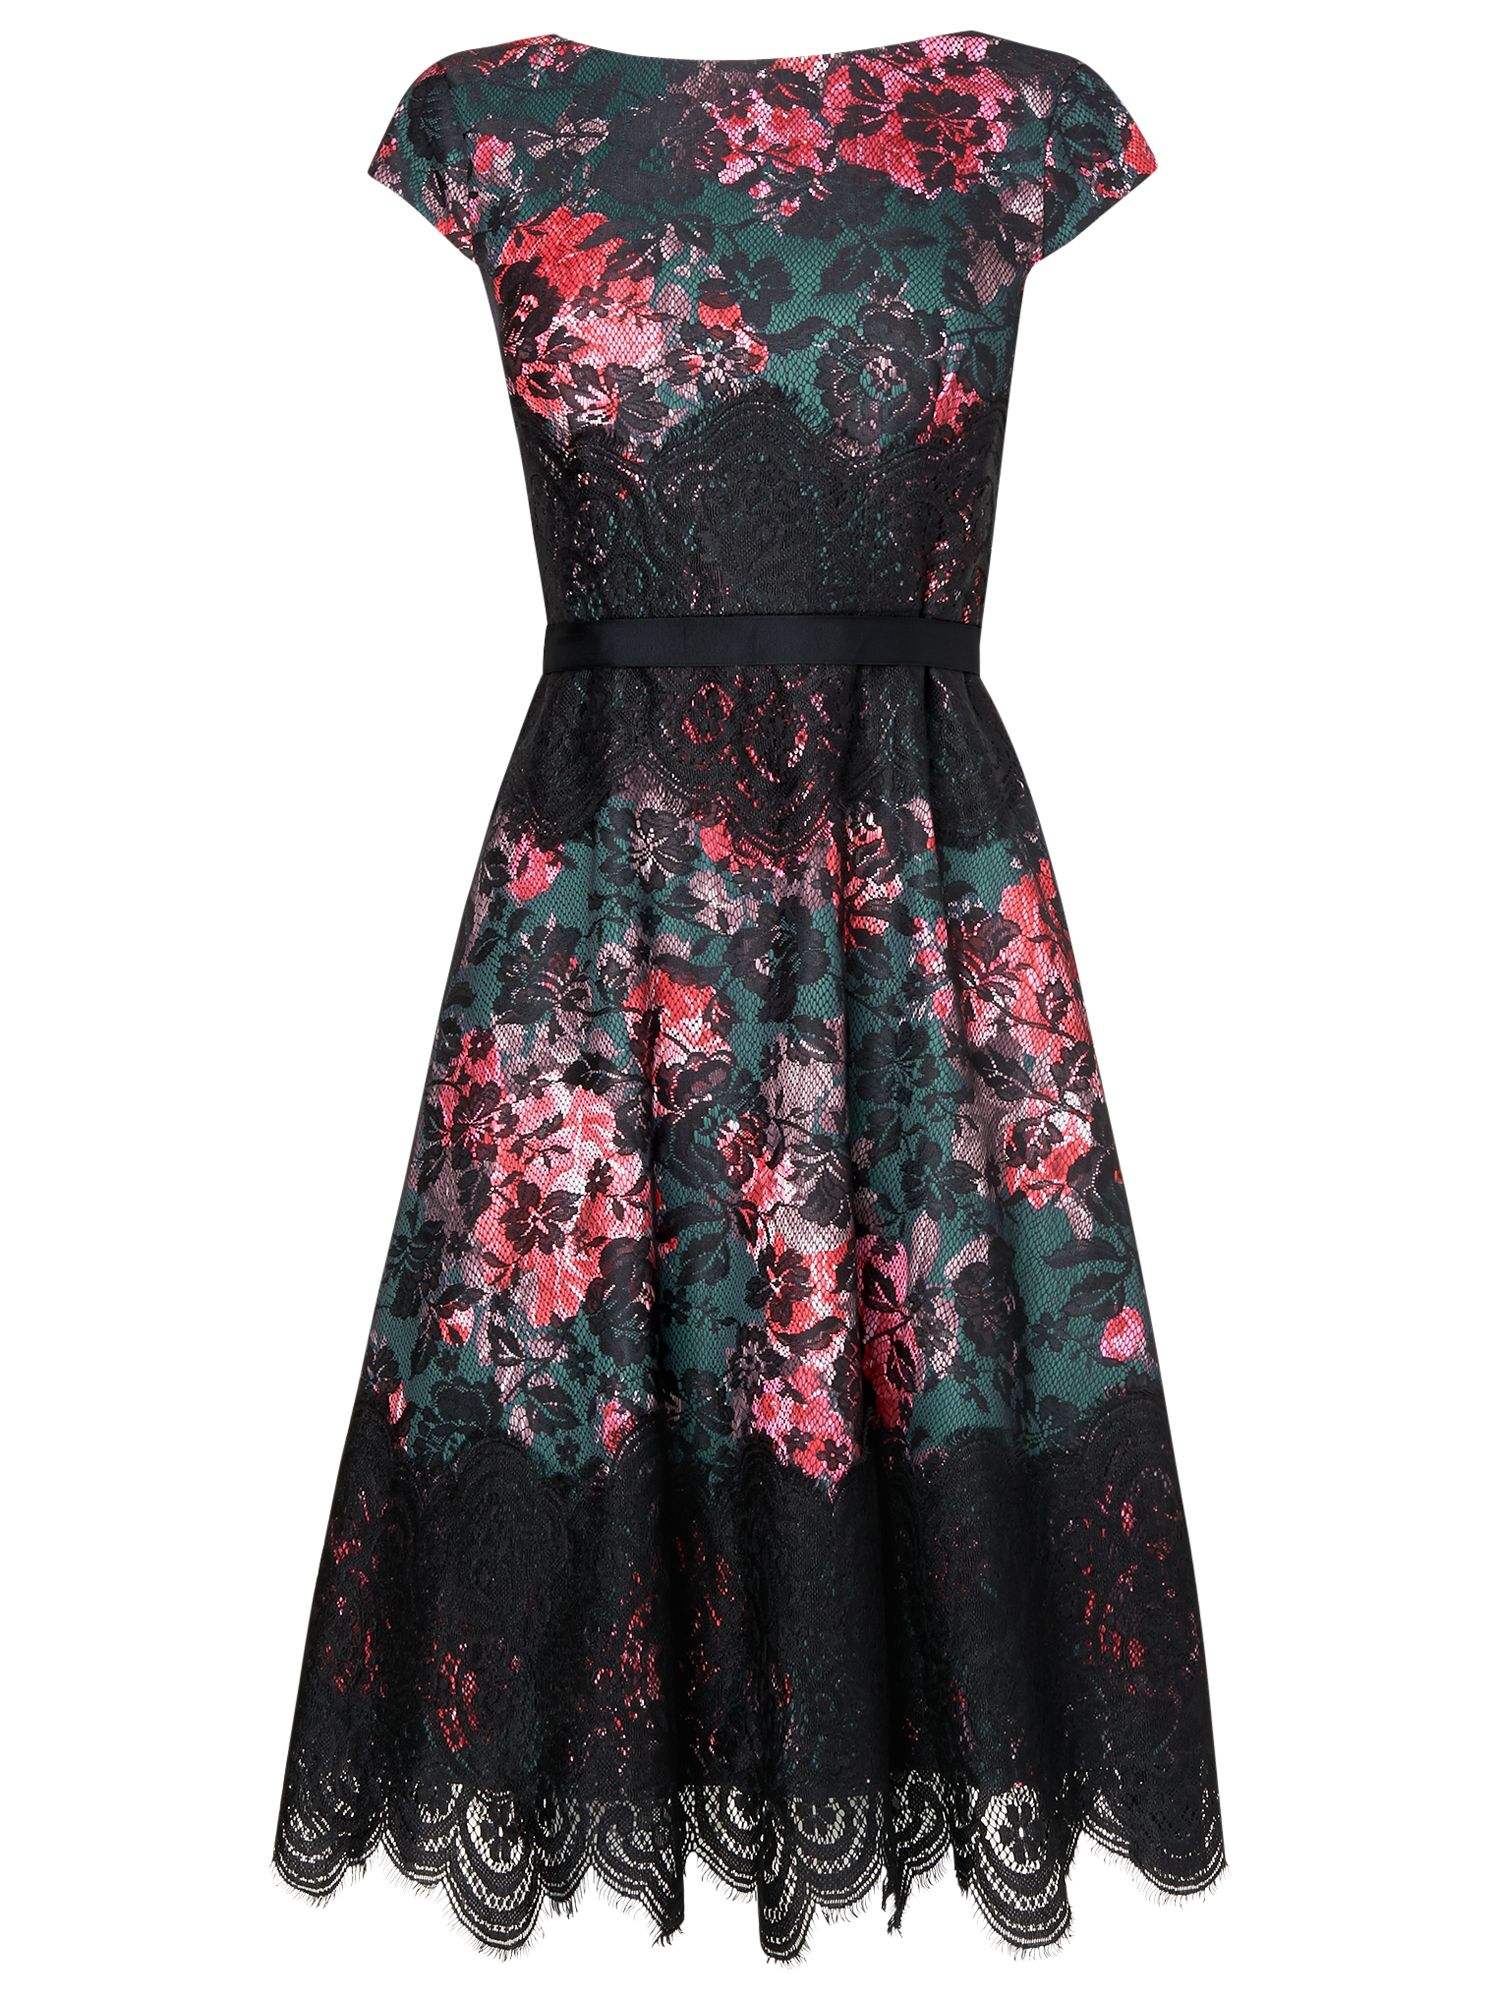 phase eight polina lace dress multi, phase, eight, polina, lace, dress, multi, phase eight, clearance, womenswear offers, womens dresses offers, women, party outfits, lace dress, womens dresses, special offers, fashion magazine, brands l-z, inactive womenswear, aw14 trends, floral bloom, 1619088